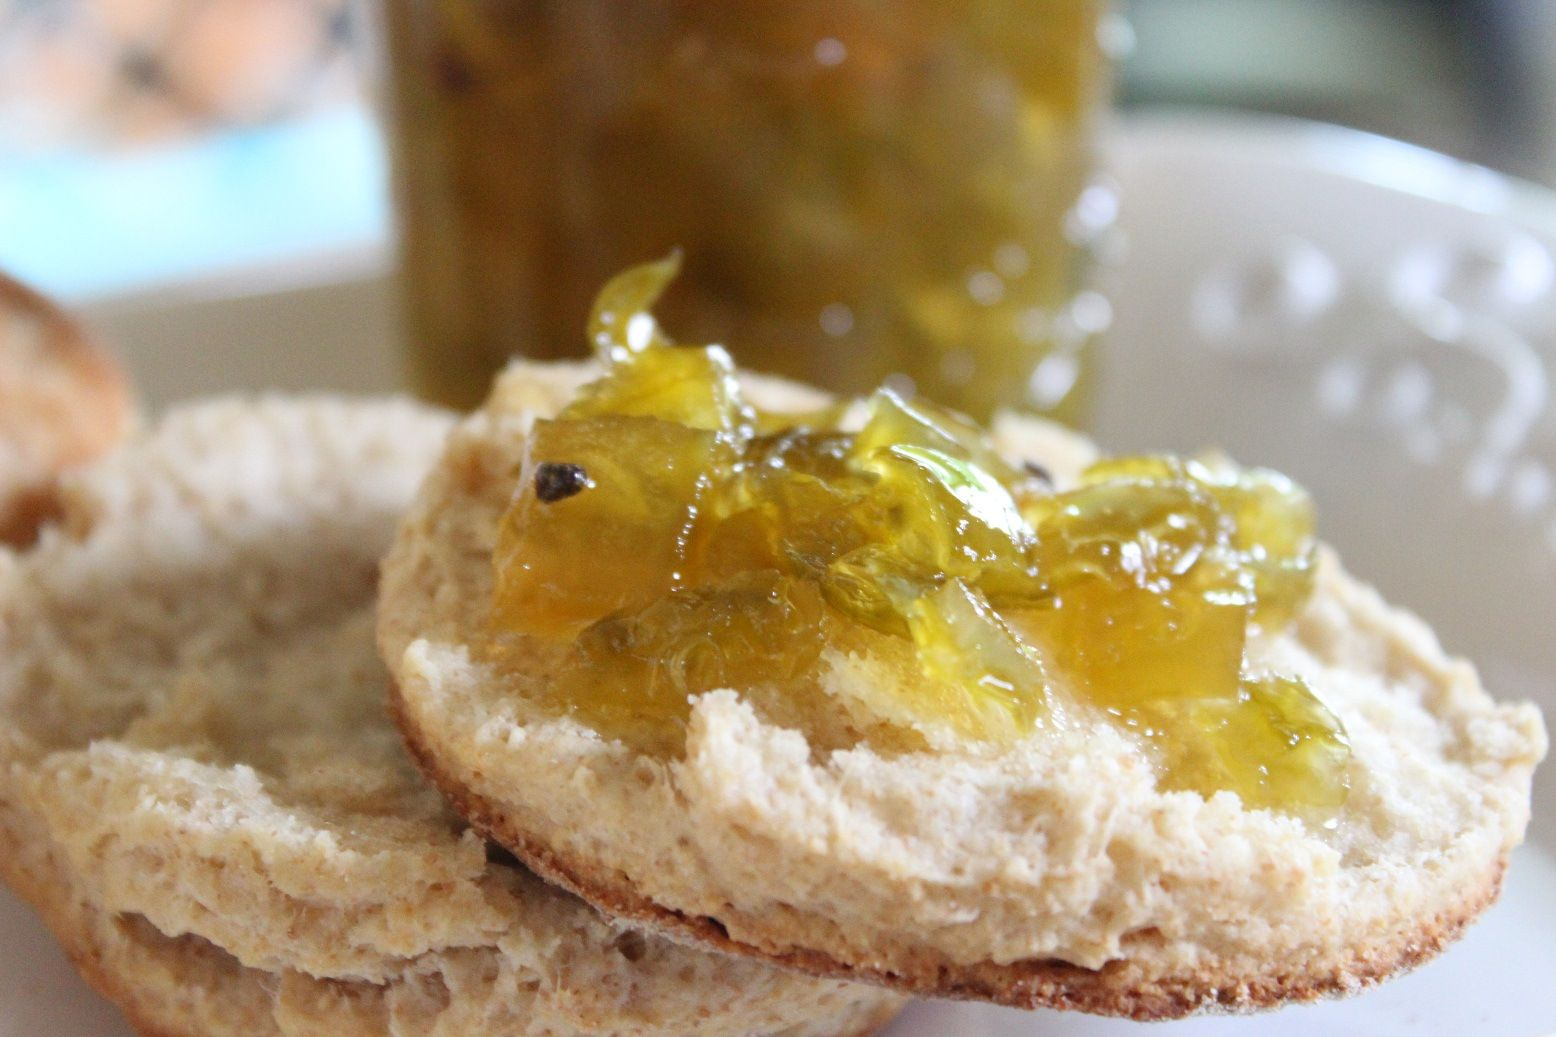 Green Tomato Preserves Spiced with Ginger and Cardamom